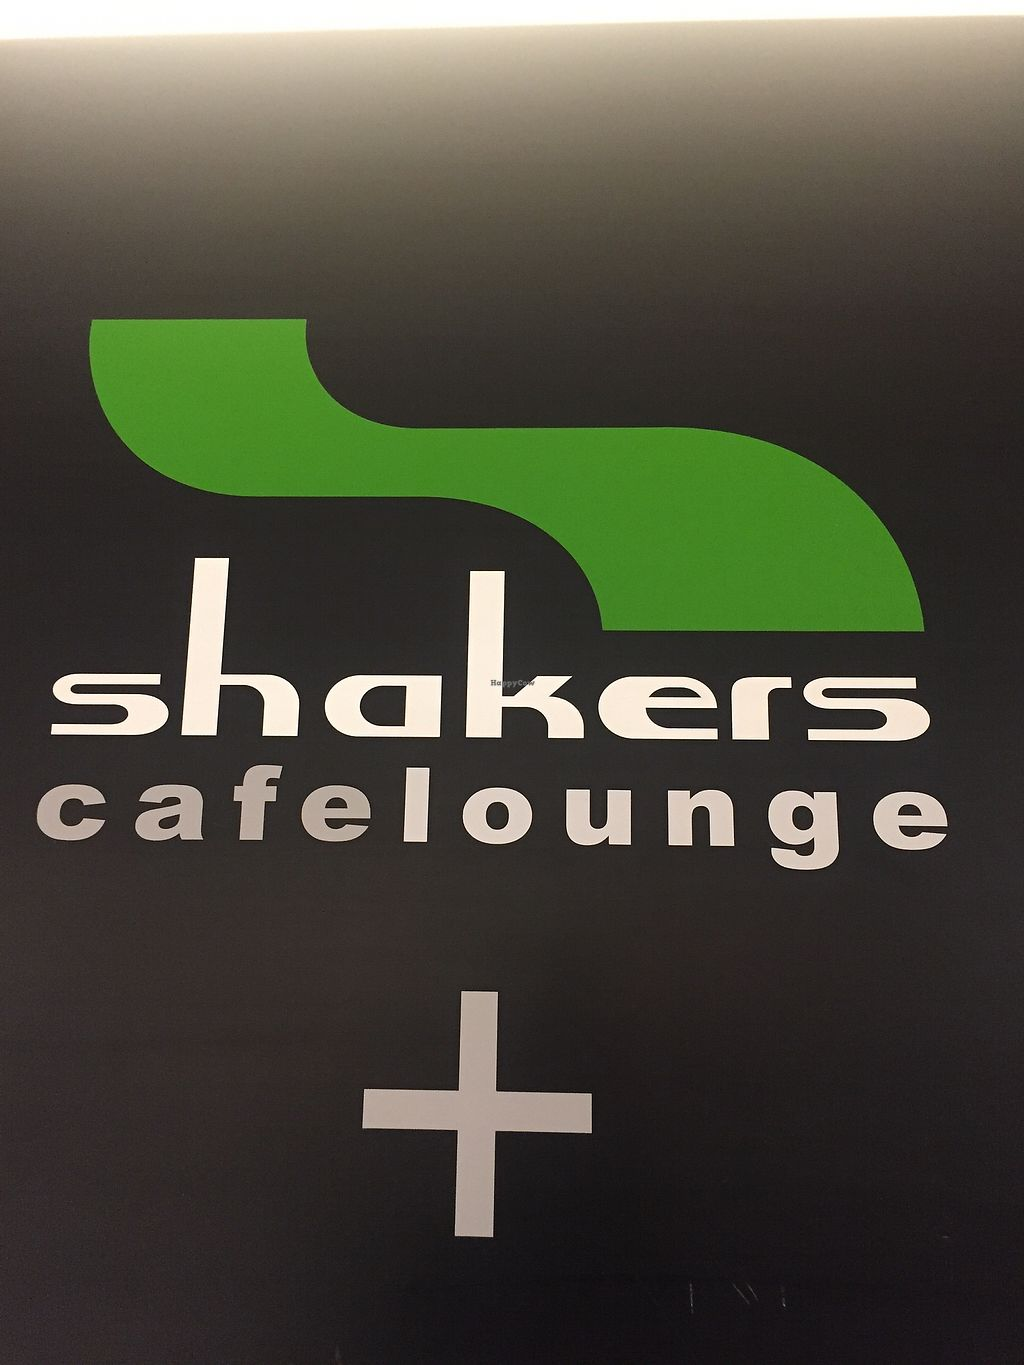 "Photo of Shakers Cafe Lounge  by <a href=""/members/profile/Vegeiko"">Vegeiko</a> <br/>Signboard  <br/> January 31, 2018  - <a href='/contact/abuse/image/110454/353133'>Report</a>"